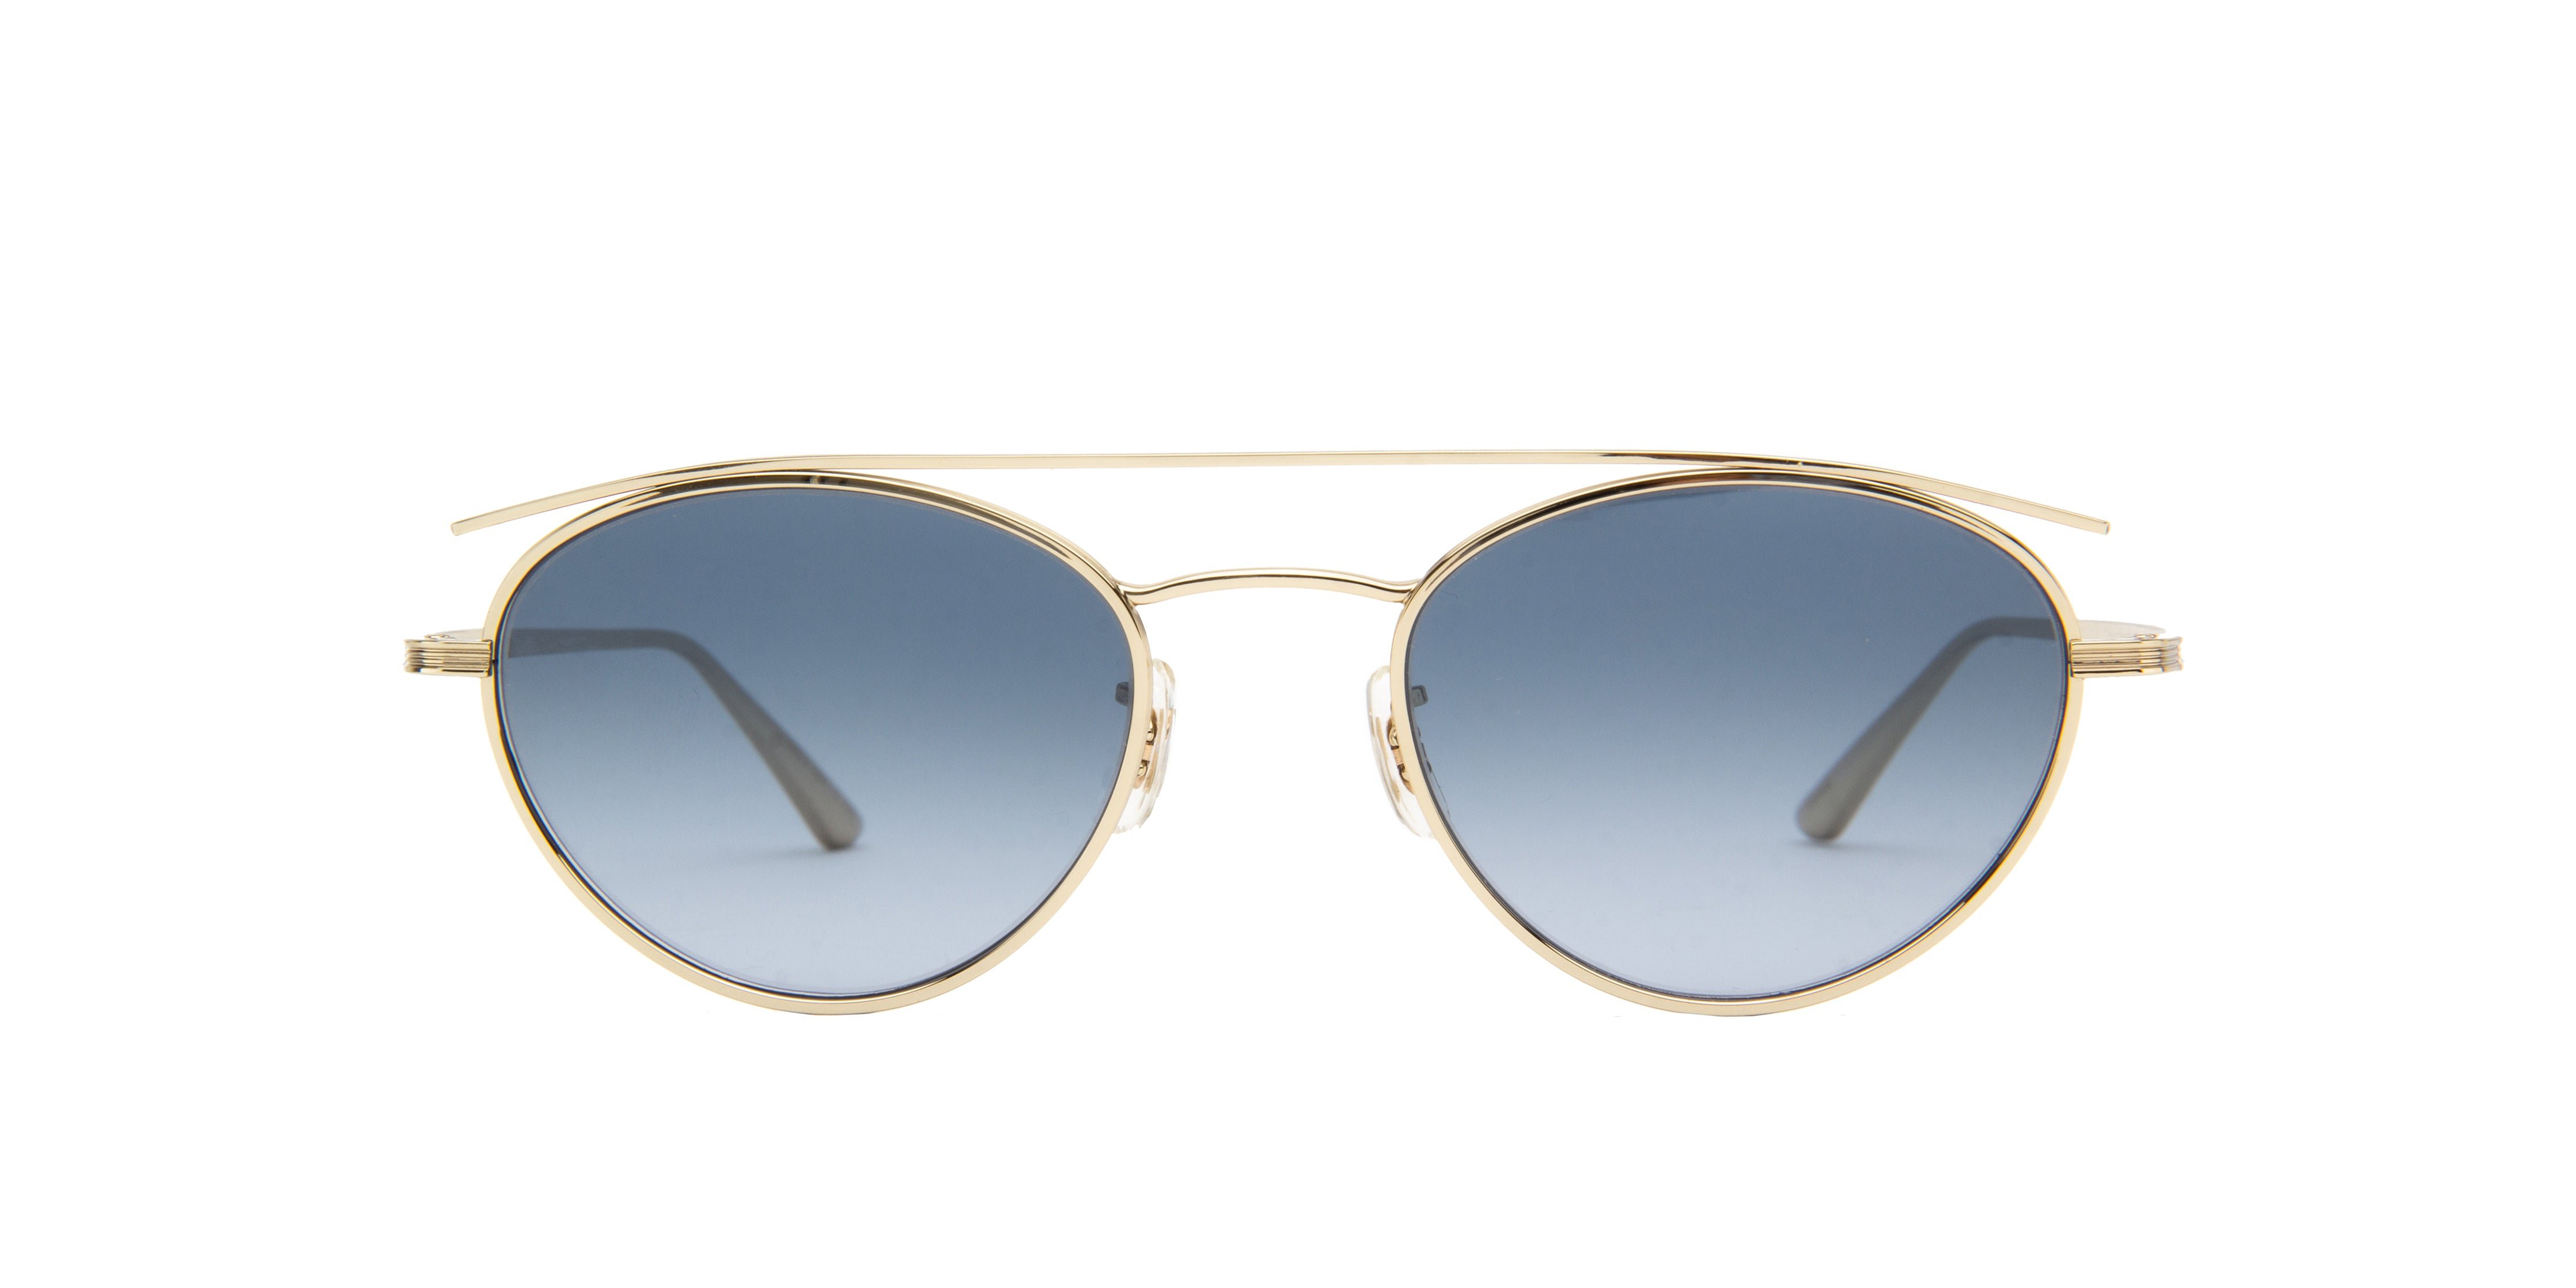 Oliver Peoples - Hightree Gold Oval Men Sunglasses - 49mm